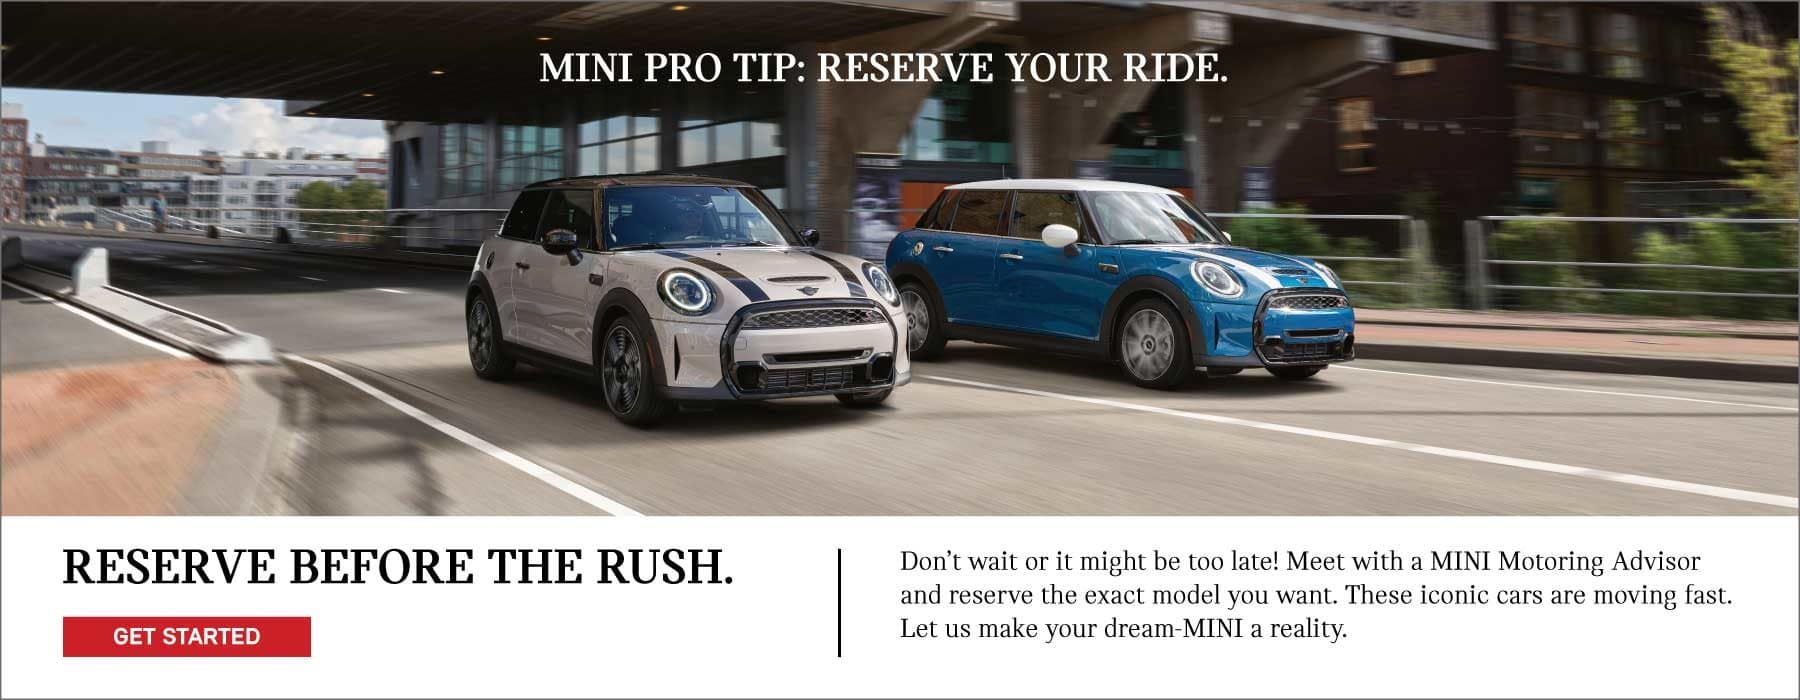 MINI PRO TIP: RESERVE YOUR RIDE BEFORE THE RUSH. Don't wait or it might be too late! Meet with your MINI dealer today and reserve the exact model you want. These iconic cars are moving fast, so get started today, and your dealer can help make your dream-MINI a reality.